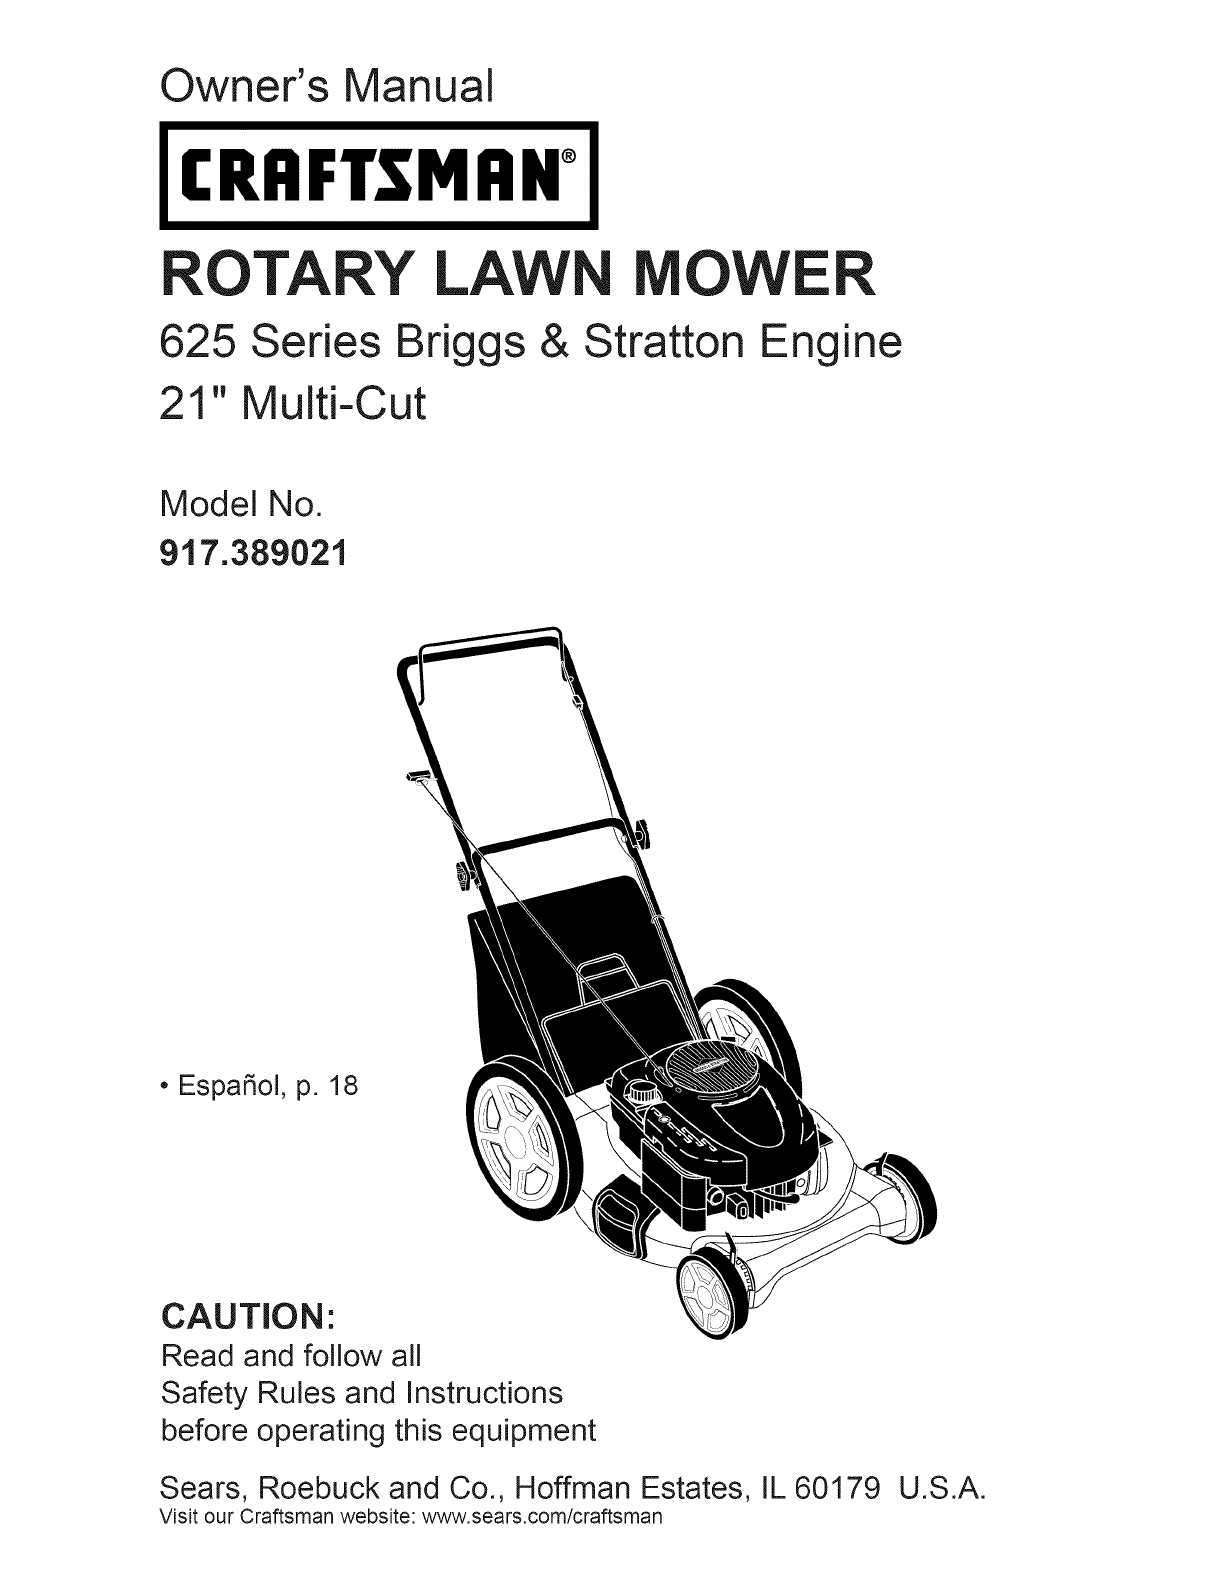 hight resolution of craftsman lawn mower model 917 wiring diagram husqvarna tractor parts diagram unique craftsman lawn mower